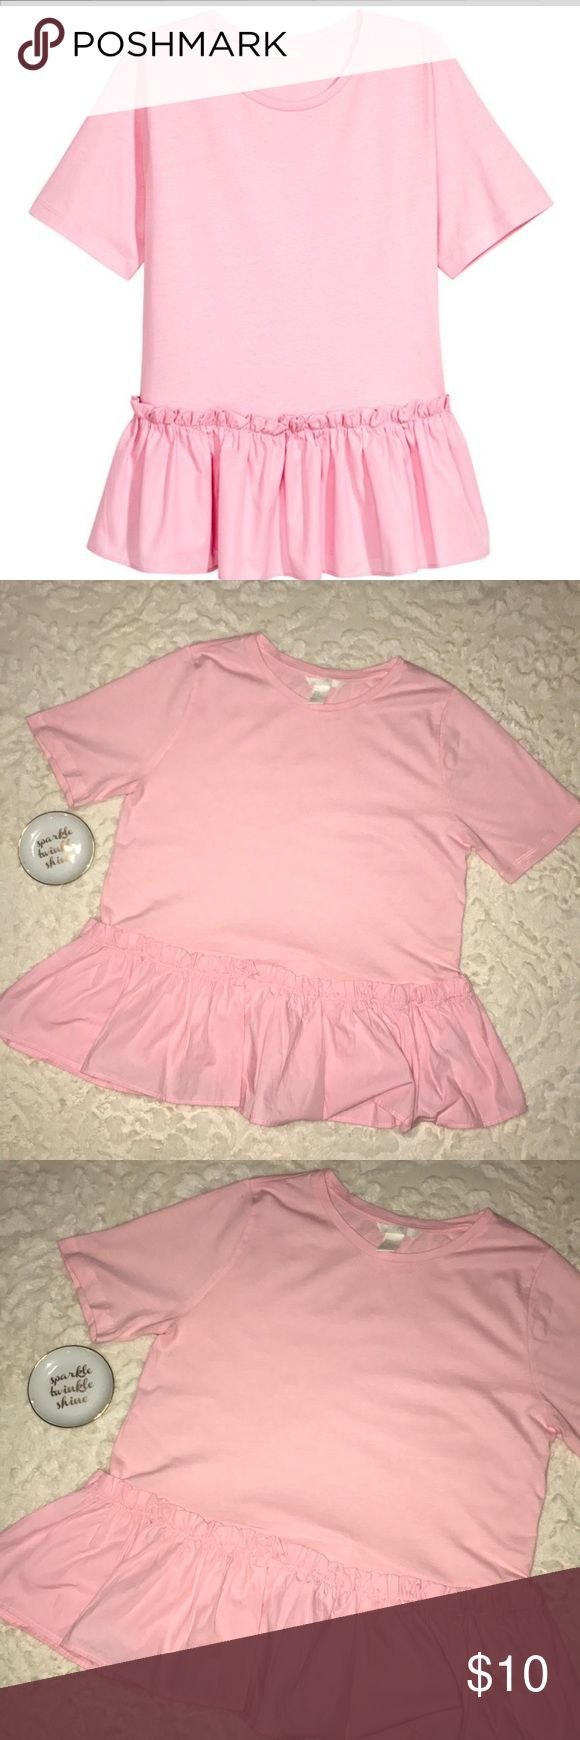 Ruffled/Flounce Pink Short Sleeve Top Short-sleeved top in cotton jersey. Seam at hem with wide flounce in woven fabric. 100% Cotton. H&M Tops